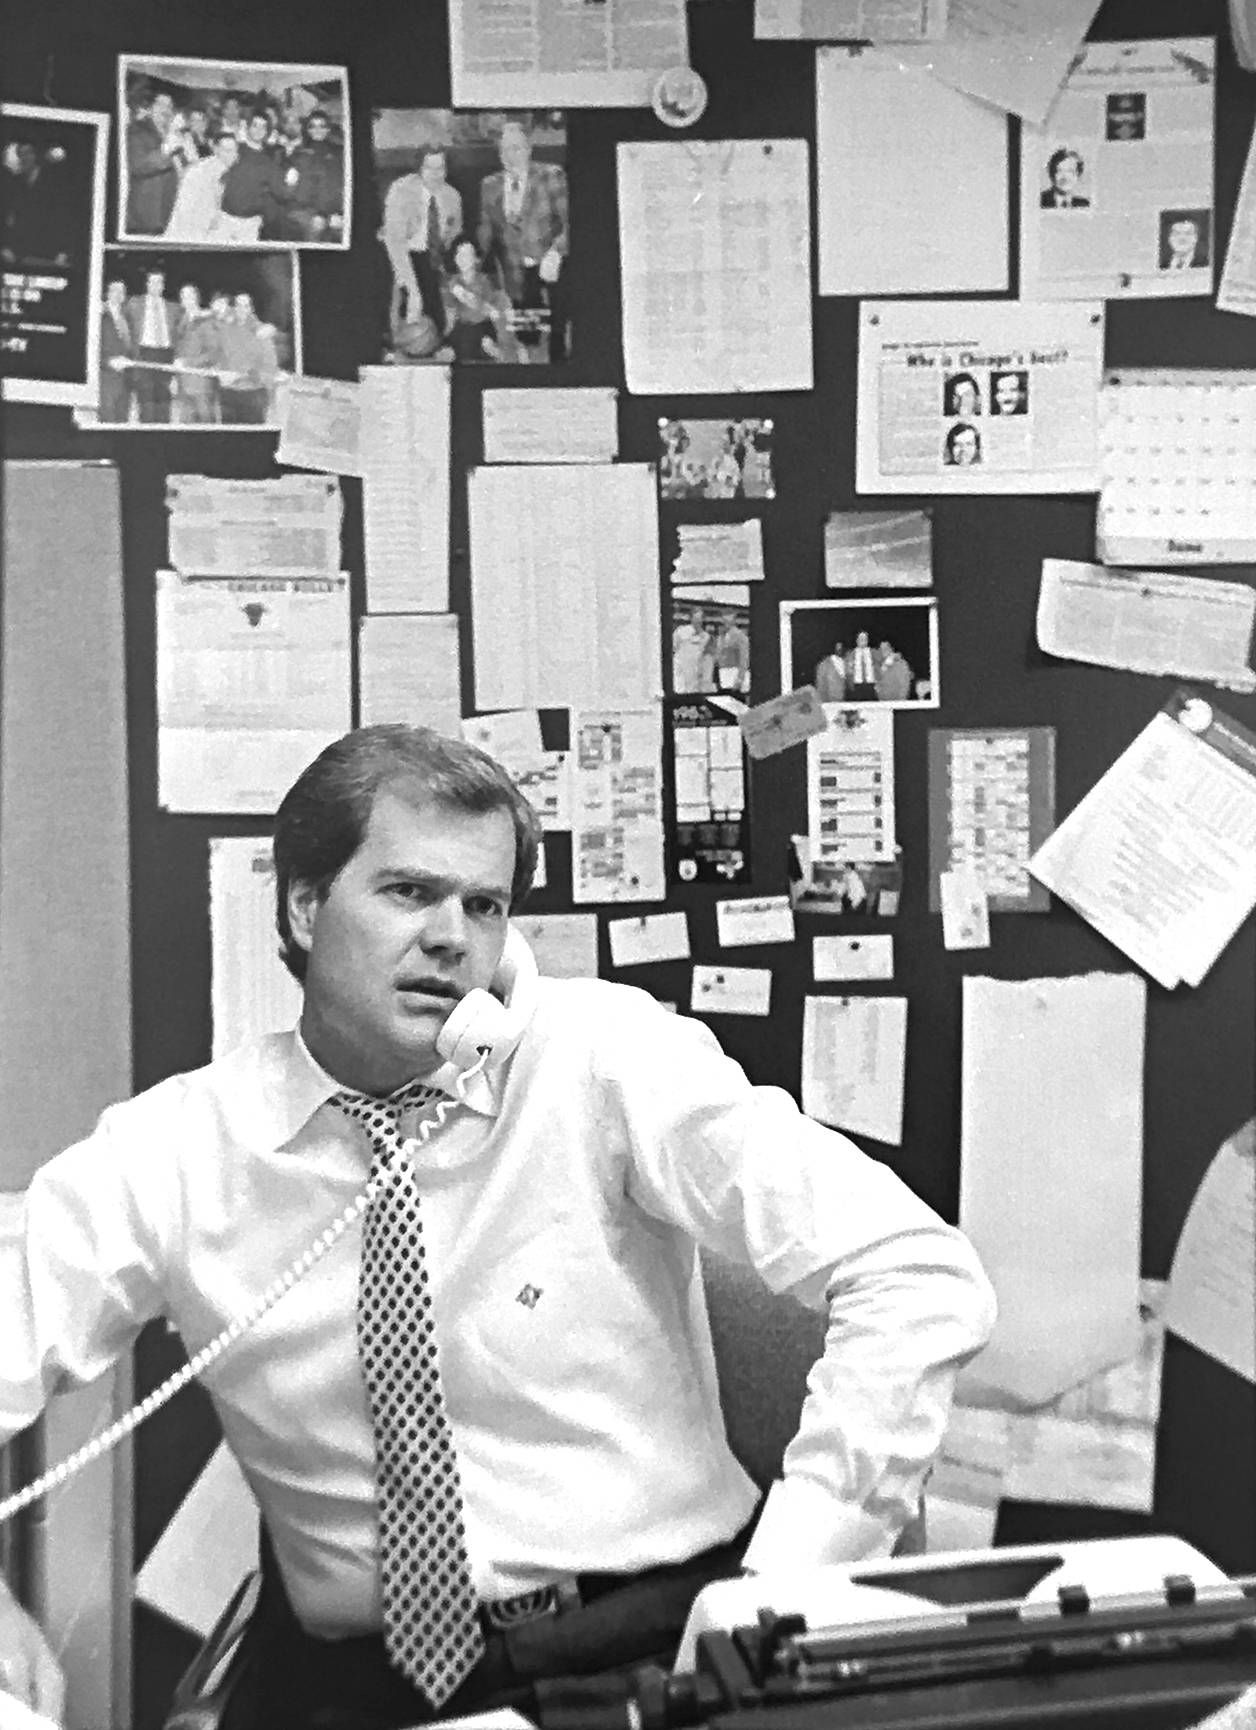 WMAQ-Channel 5 sportscaster Chet Coppock in his Chicago office in July 1983.